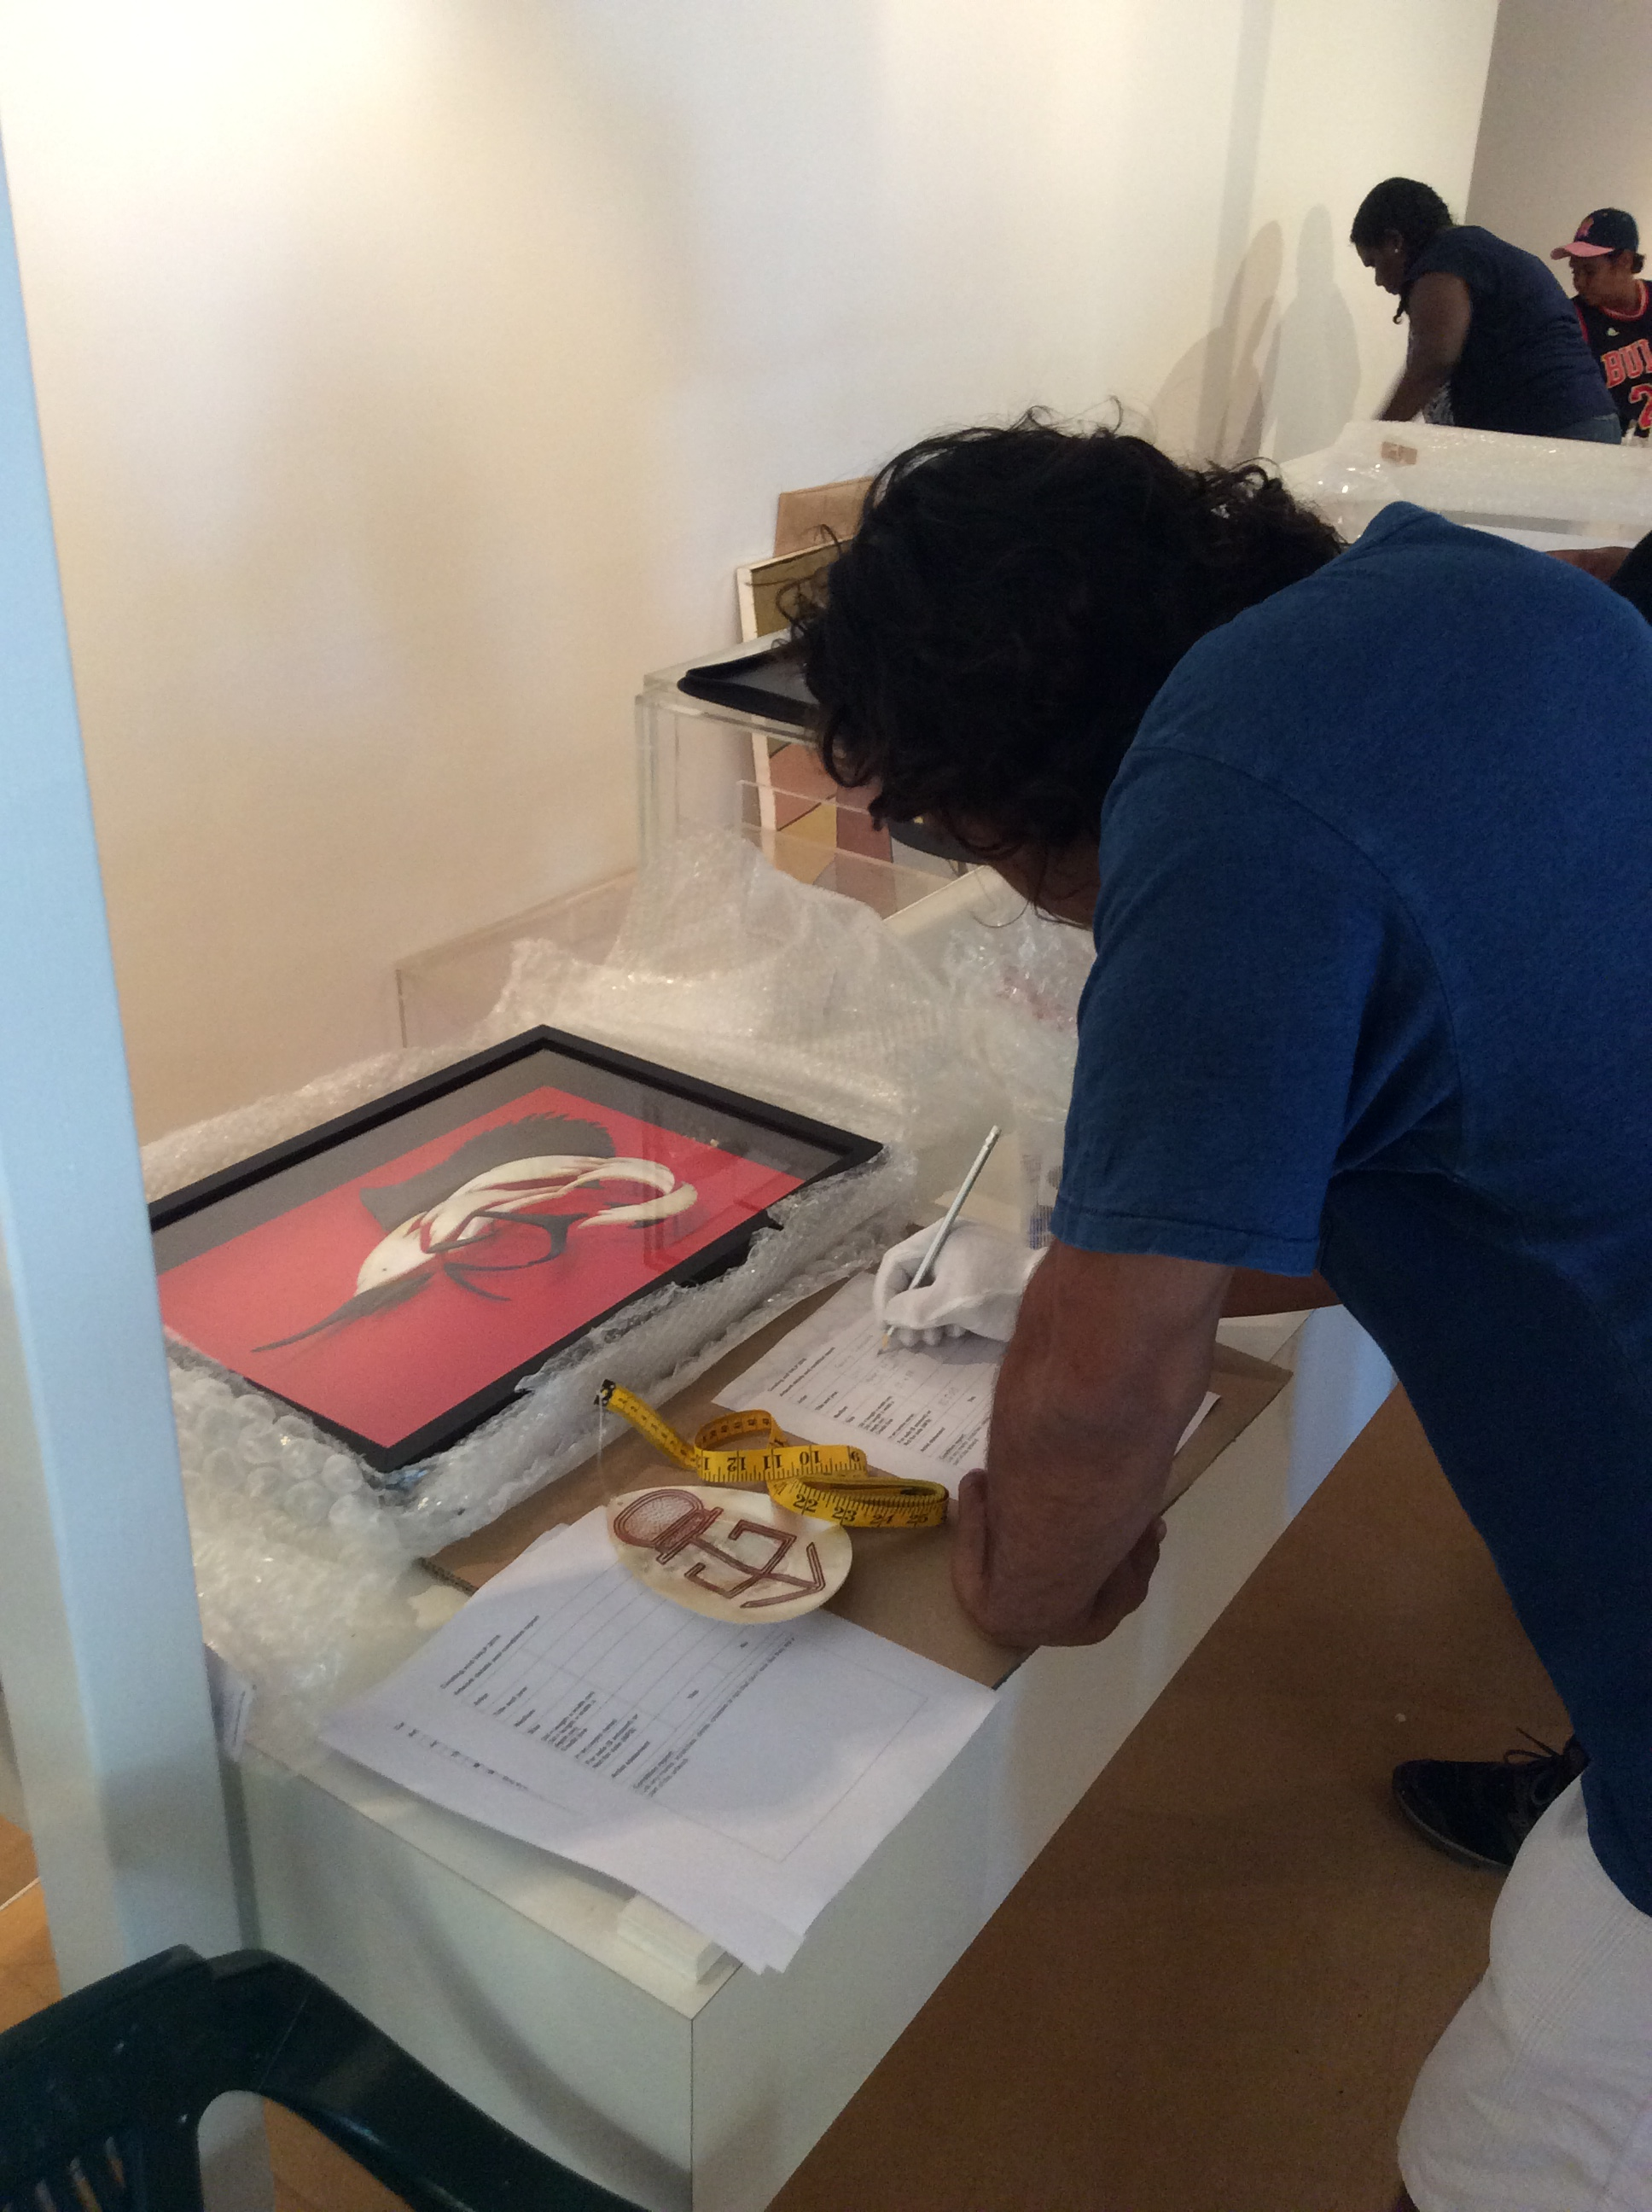 Visual Arts Leadership Program participant Garry Sibosado writing a condition report during the 2016 curating workshop for the inaugural Desert River Sea exhibition opening in Kununurra © AGWA